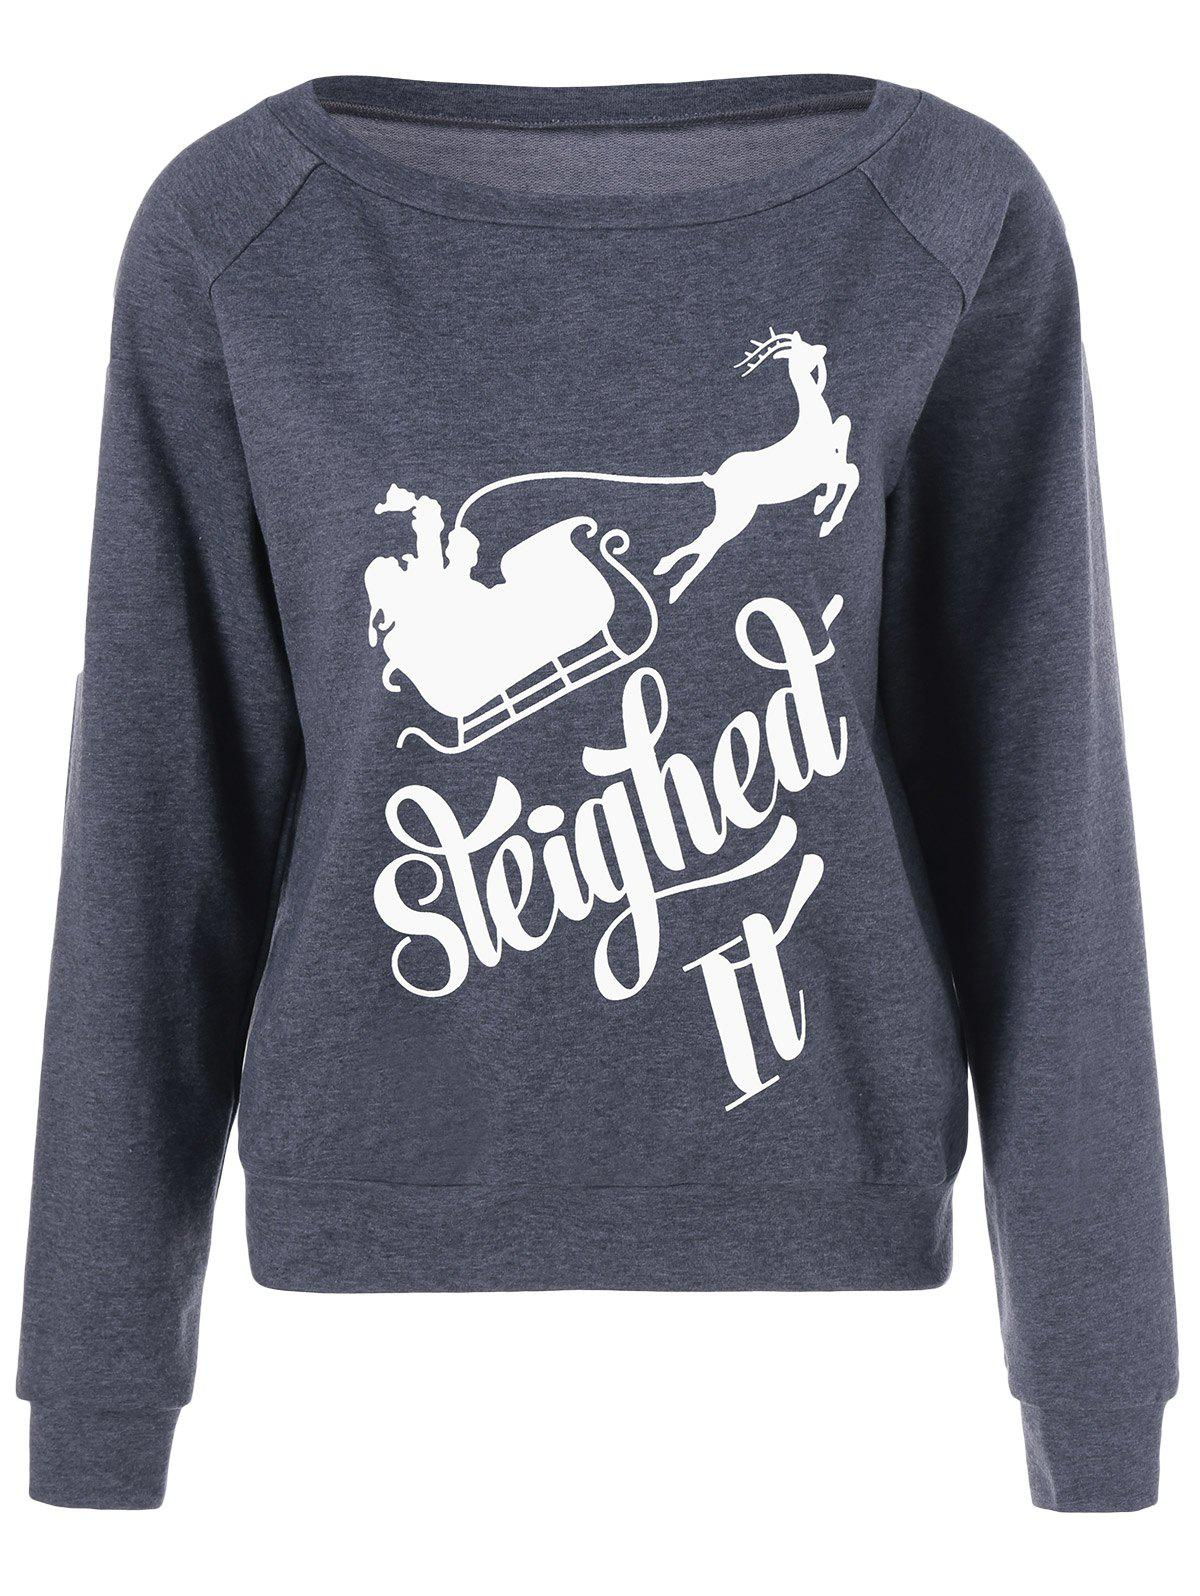 Sleigh Print Christmas SweatshirtWOMEN<br><br>Size: L; Color: MOUSE GREY; Material: Spandex; Shirt Length: Regular; Sleeve Length: Full; Style: Casual; Pattern Style: Letter; Season: Fall,Spring; Weight: 0.400kg; Package Contents: 1 x Sweatshirt;